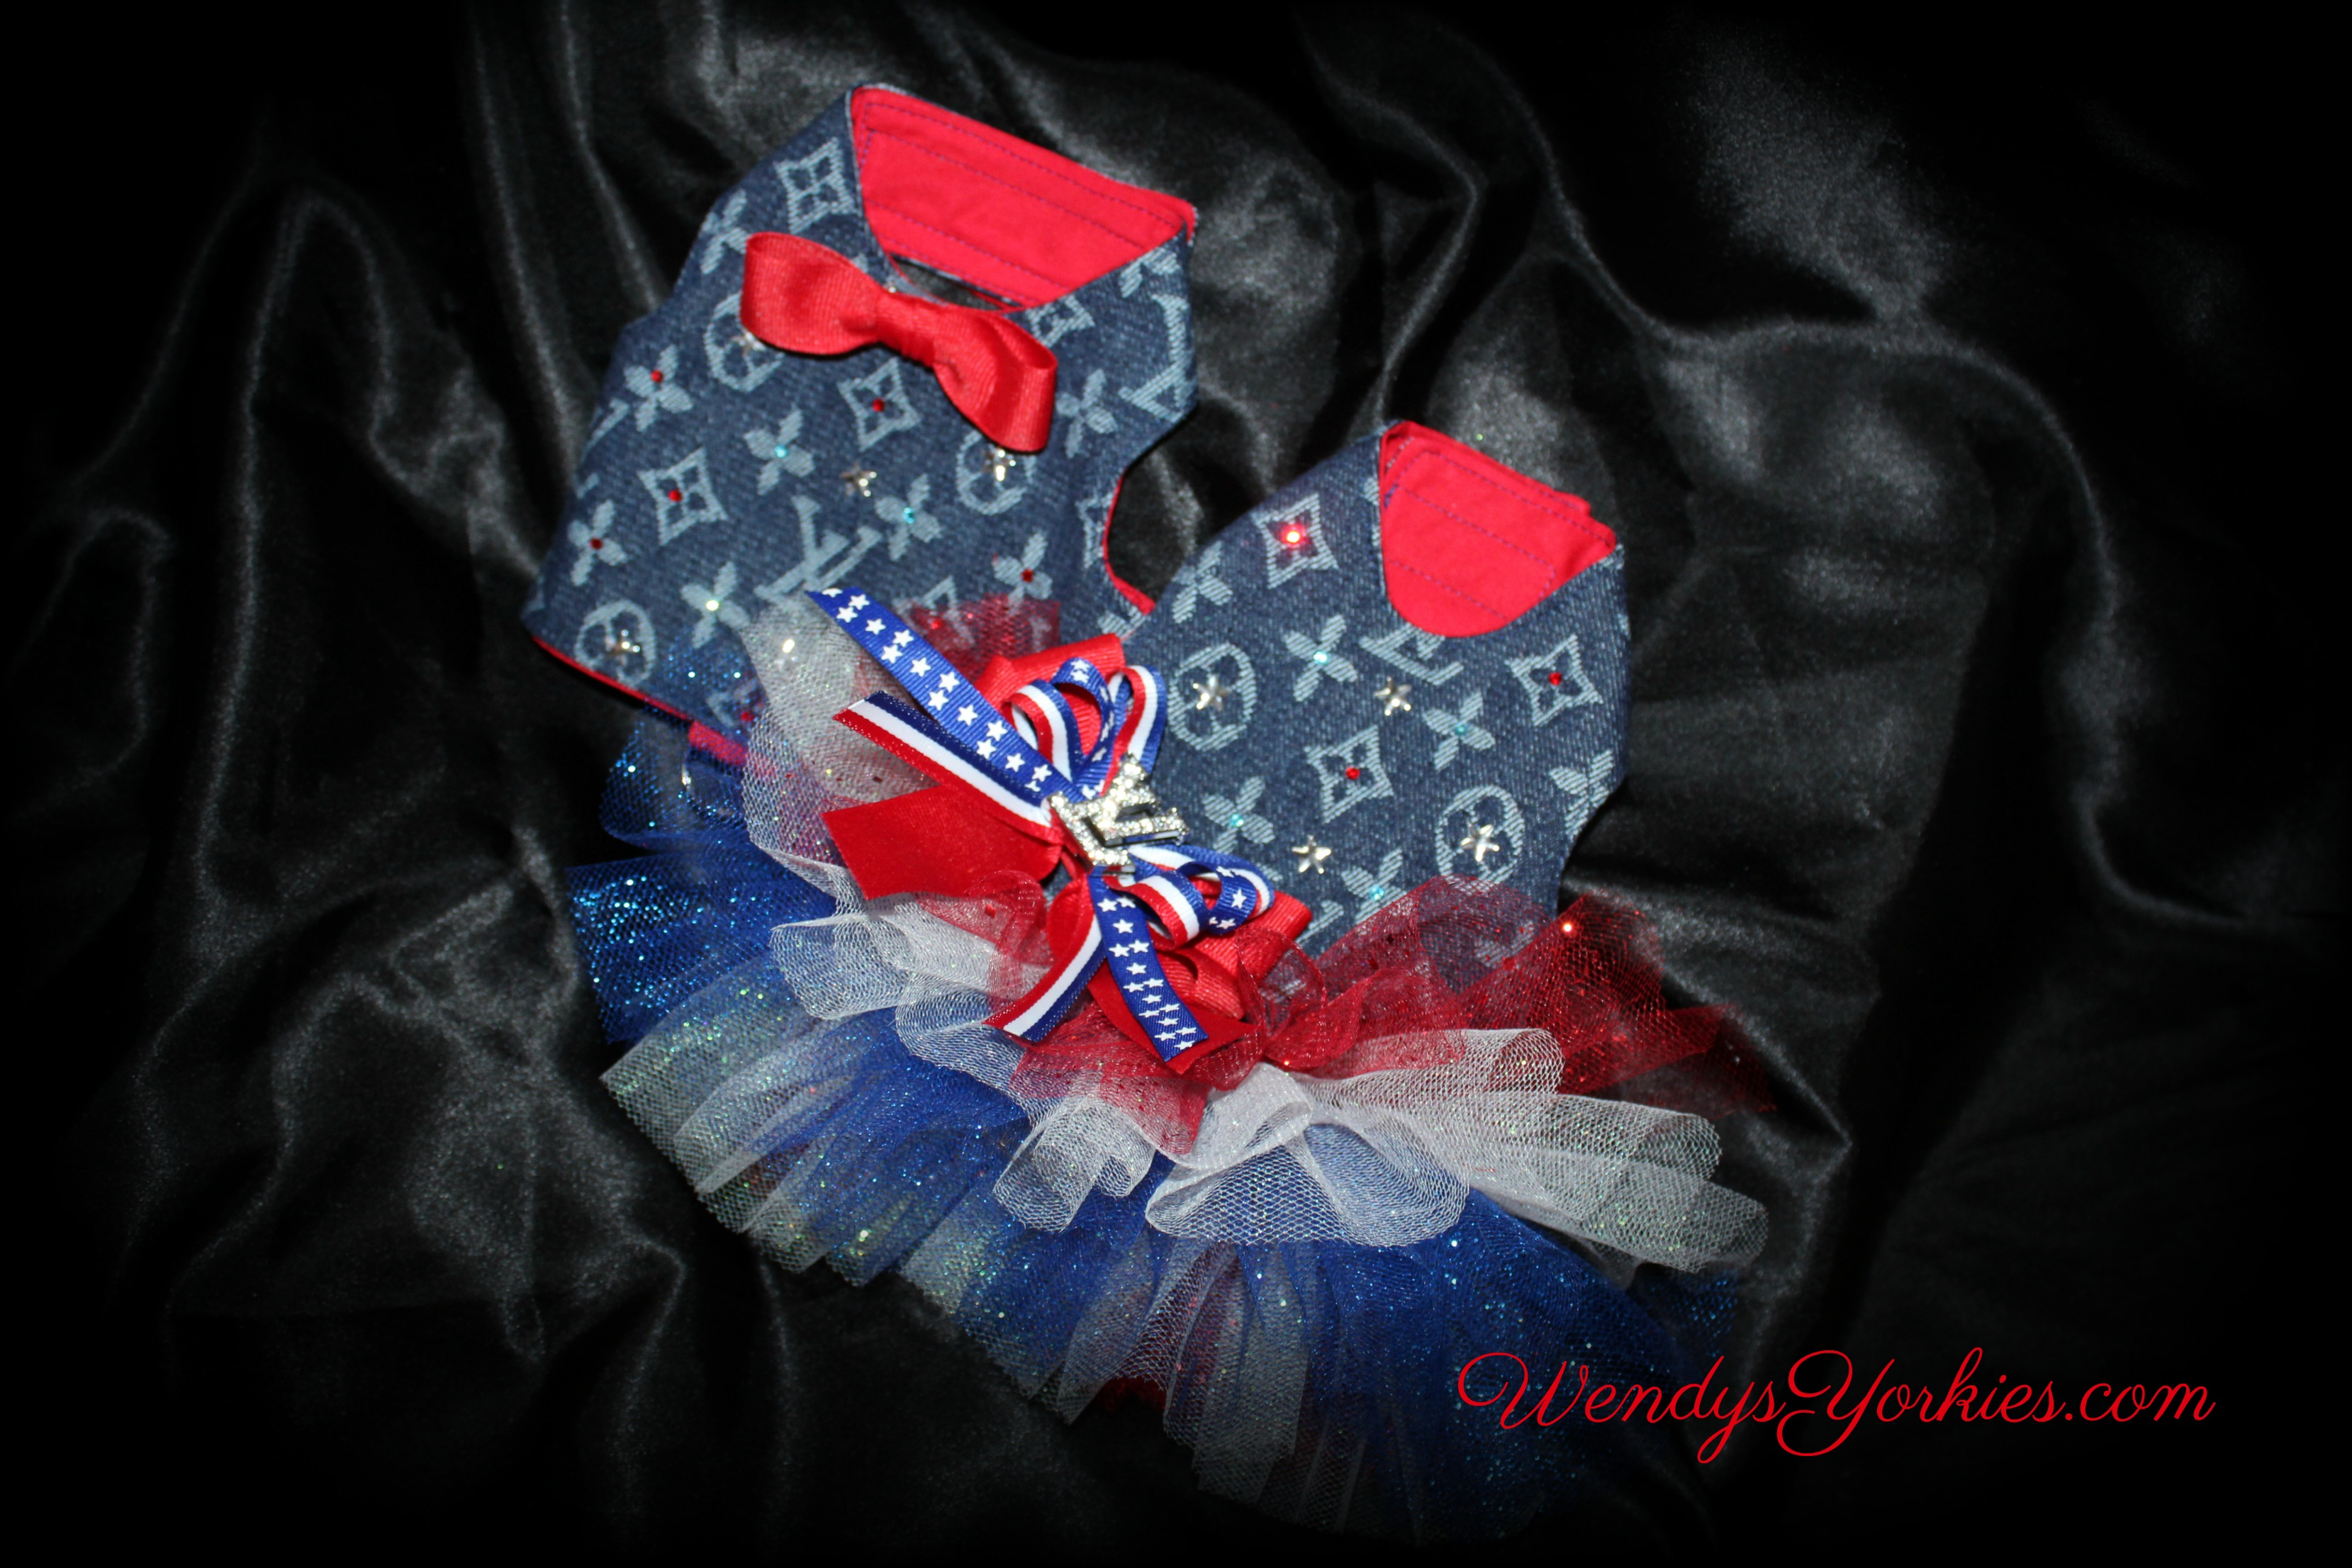 4 th of July Dog Dress, LV designer dog harness, WendysYorkies.com